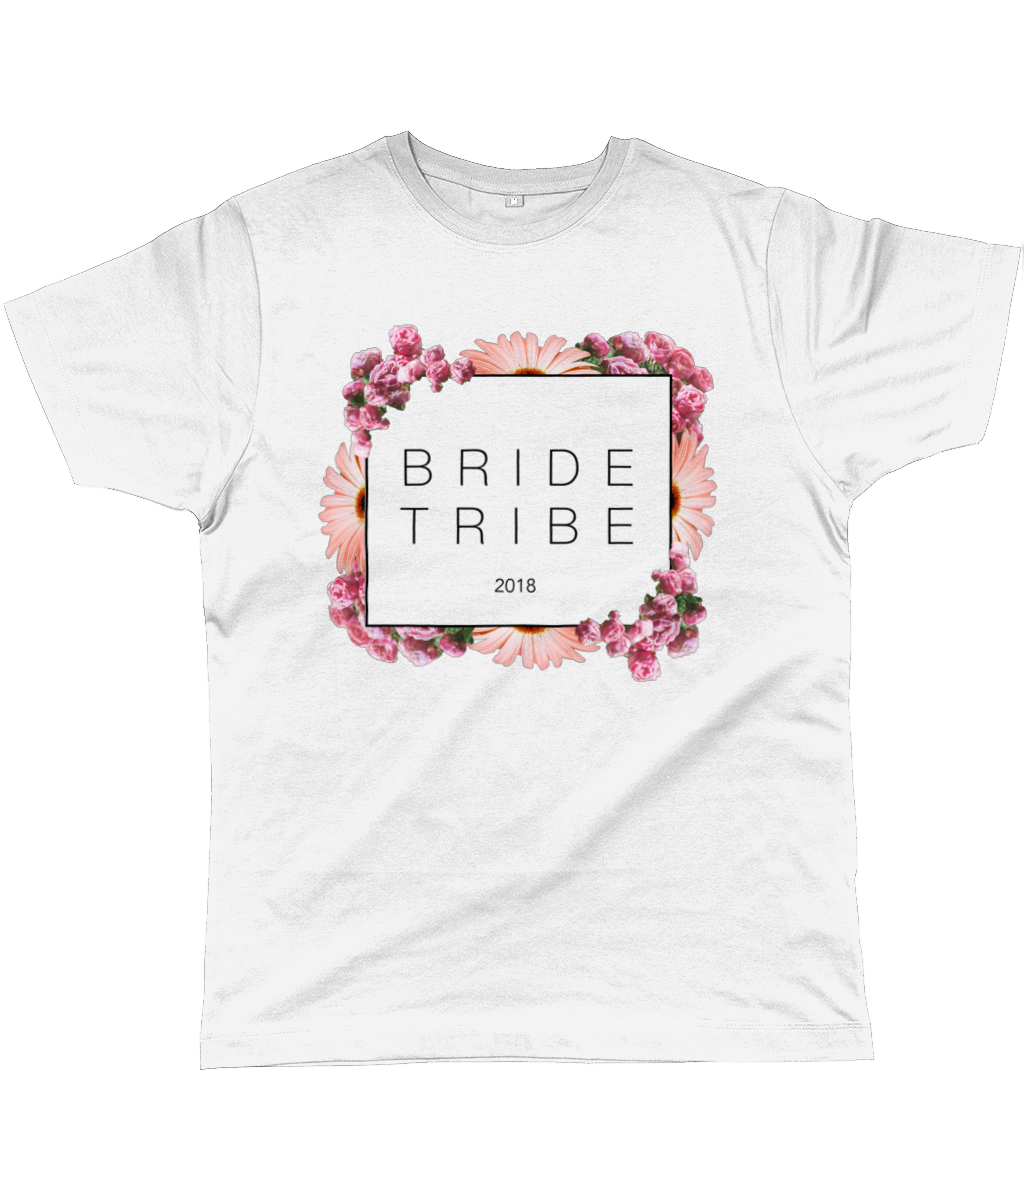 Bride Tribe Floral Block Unisex Fit Tee - 2018 - UK and EU